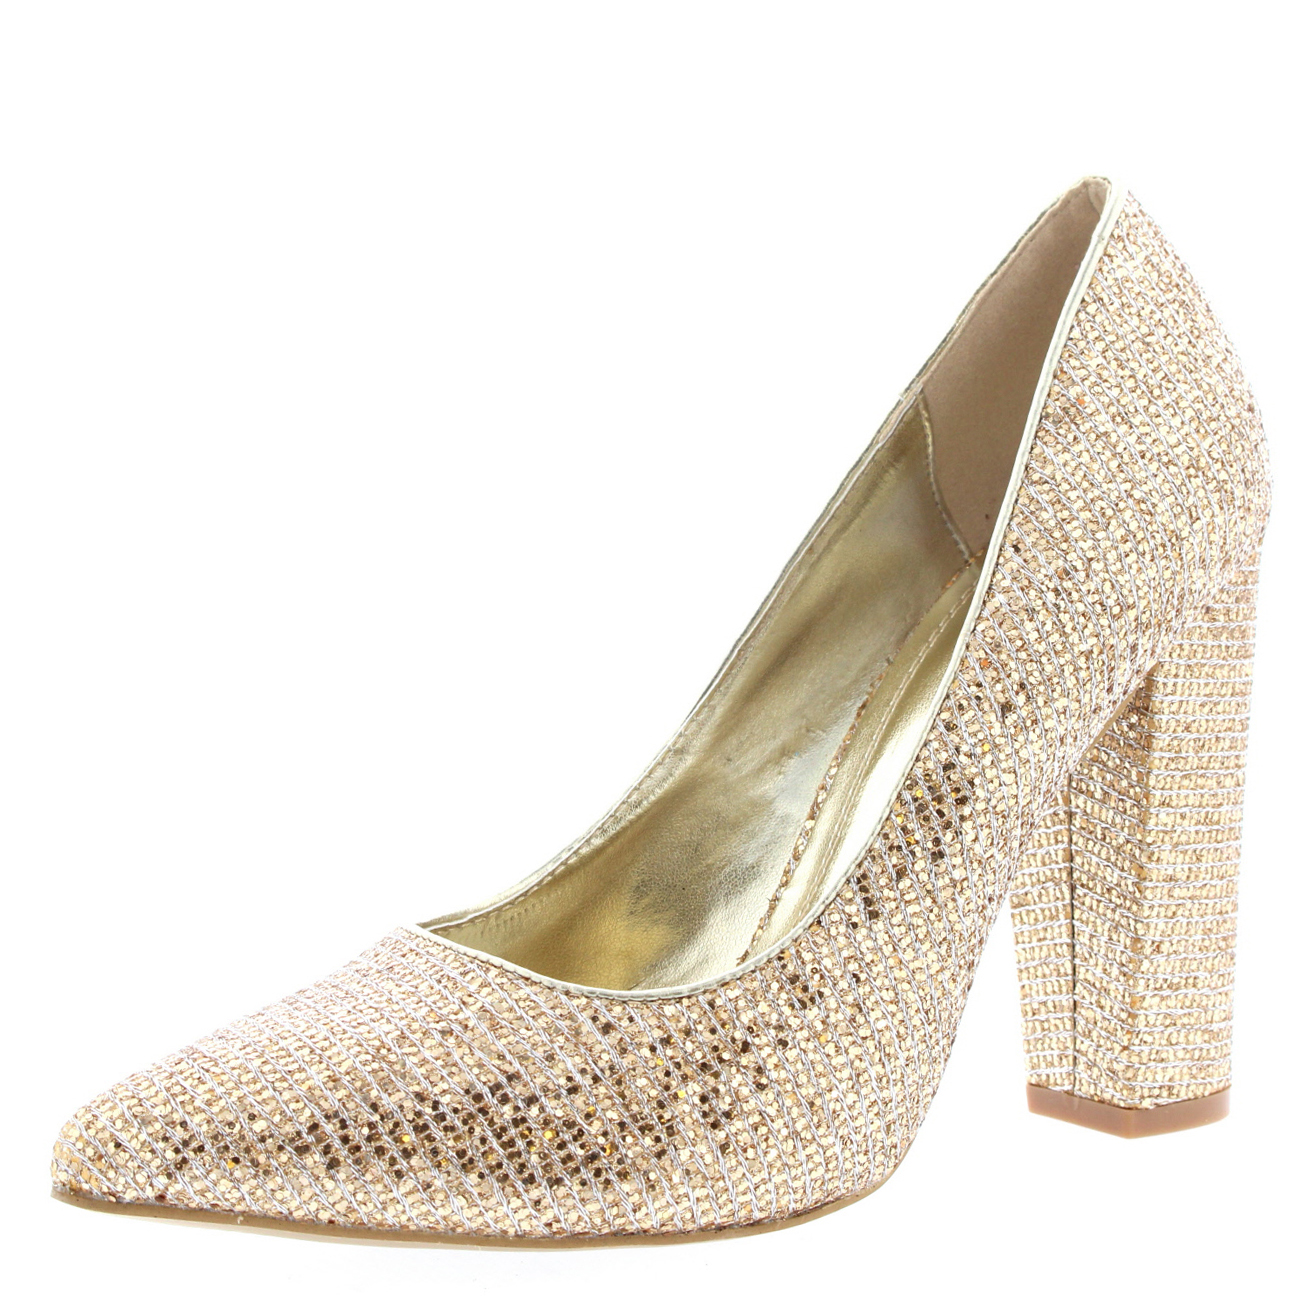 76b591db7e8 These chic new heels look even better when worn. Featuring a slightly  pointed toe front